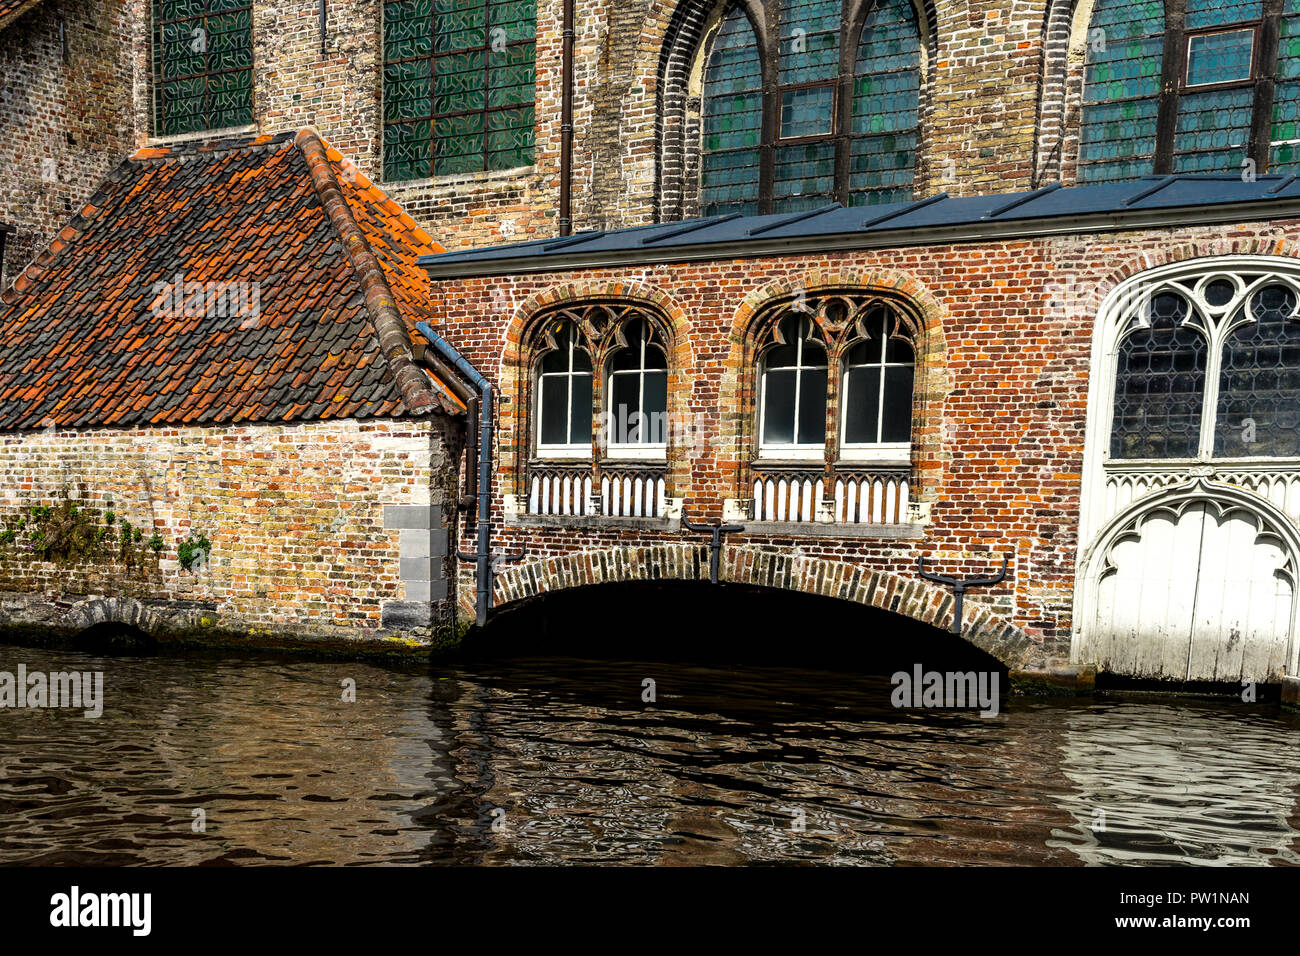 the canal at Brugge, Belgium across an arch - Stock Image